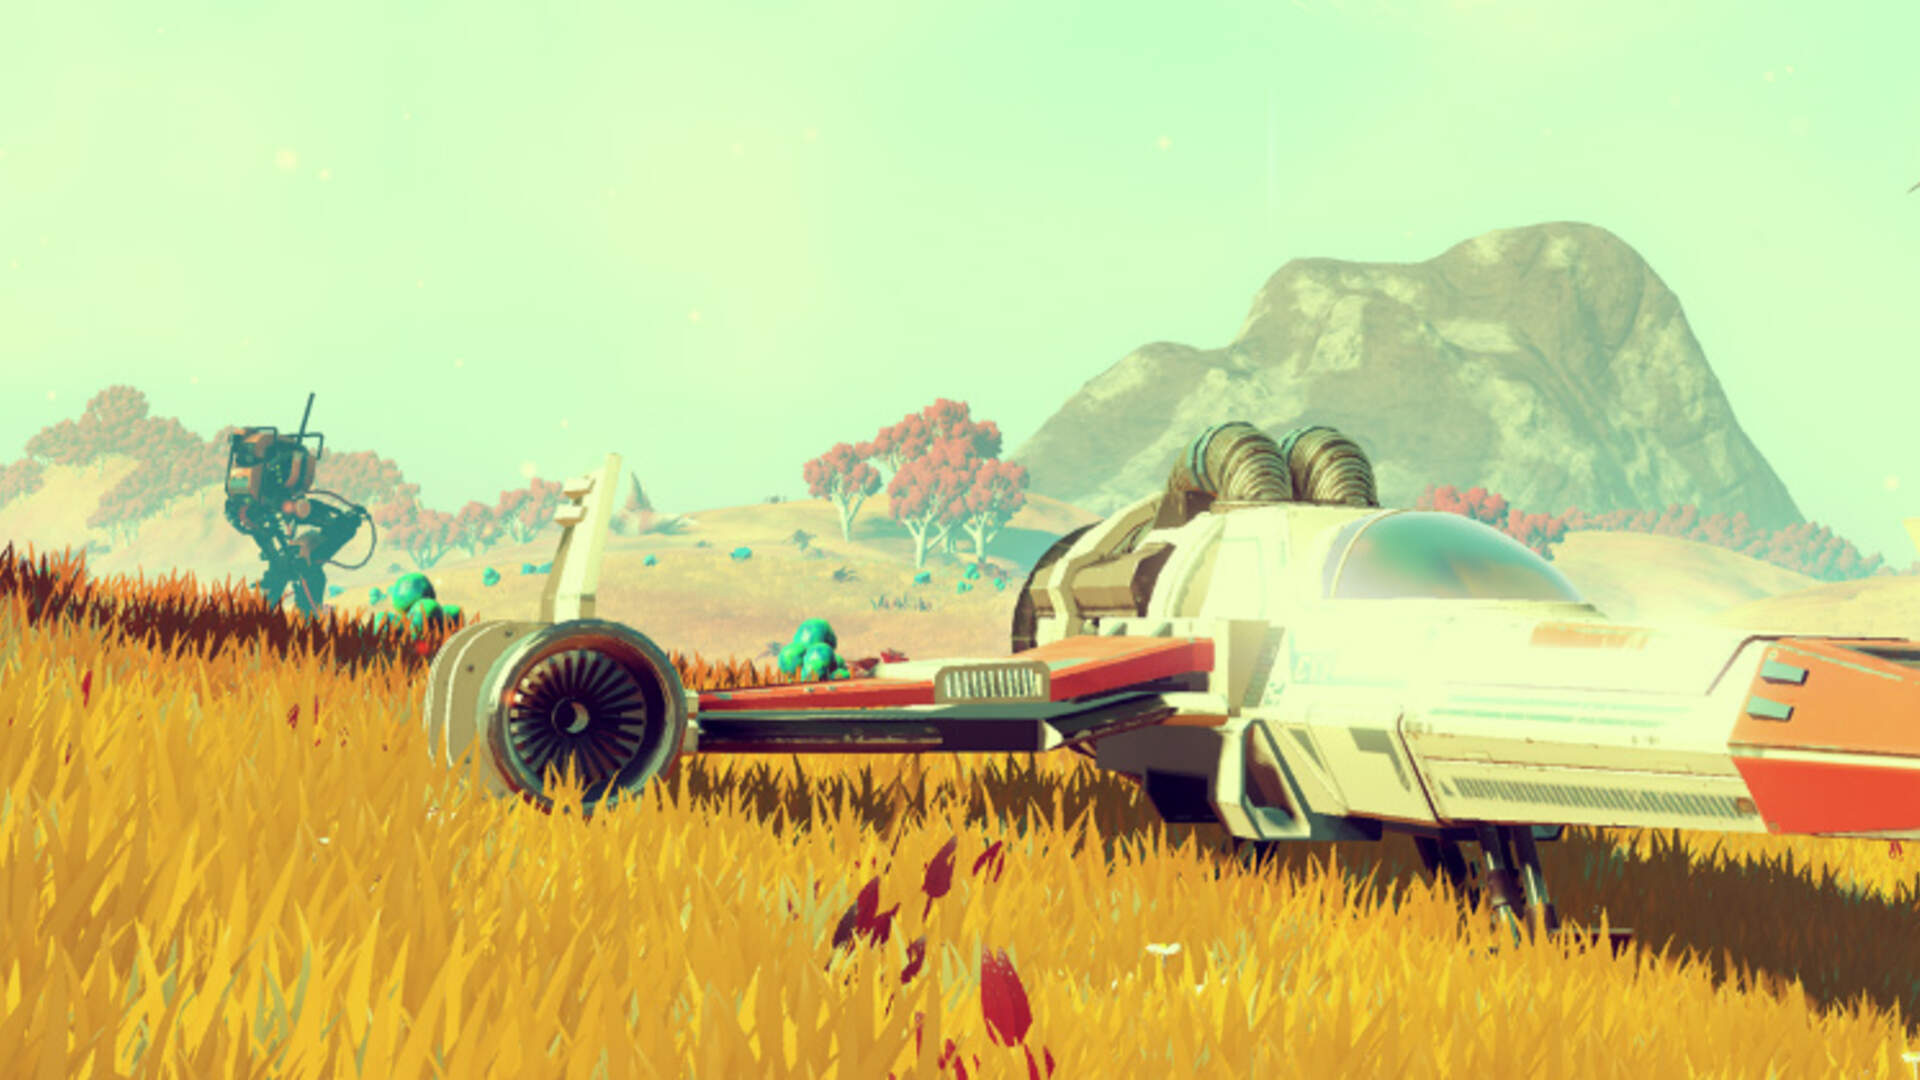 No Man's Sky's Seamlessness is its Greatest Strength